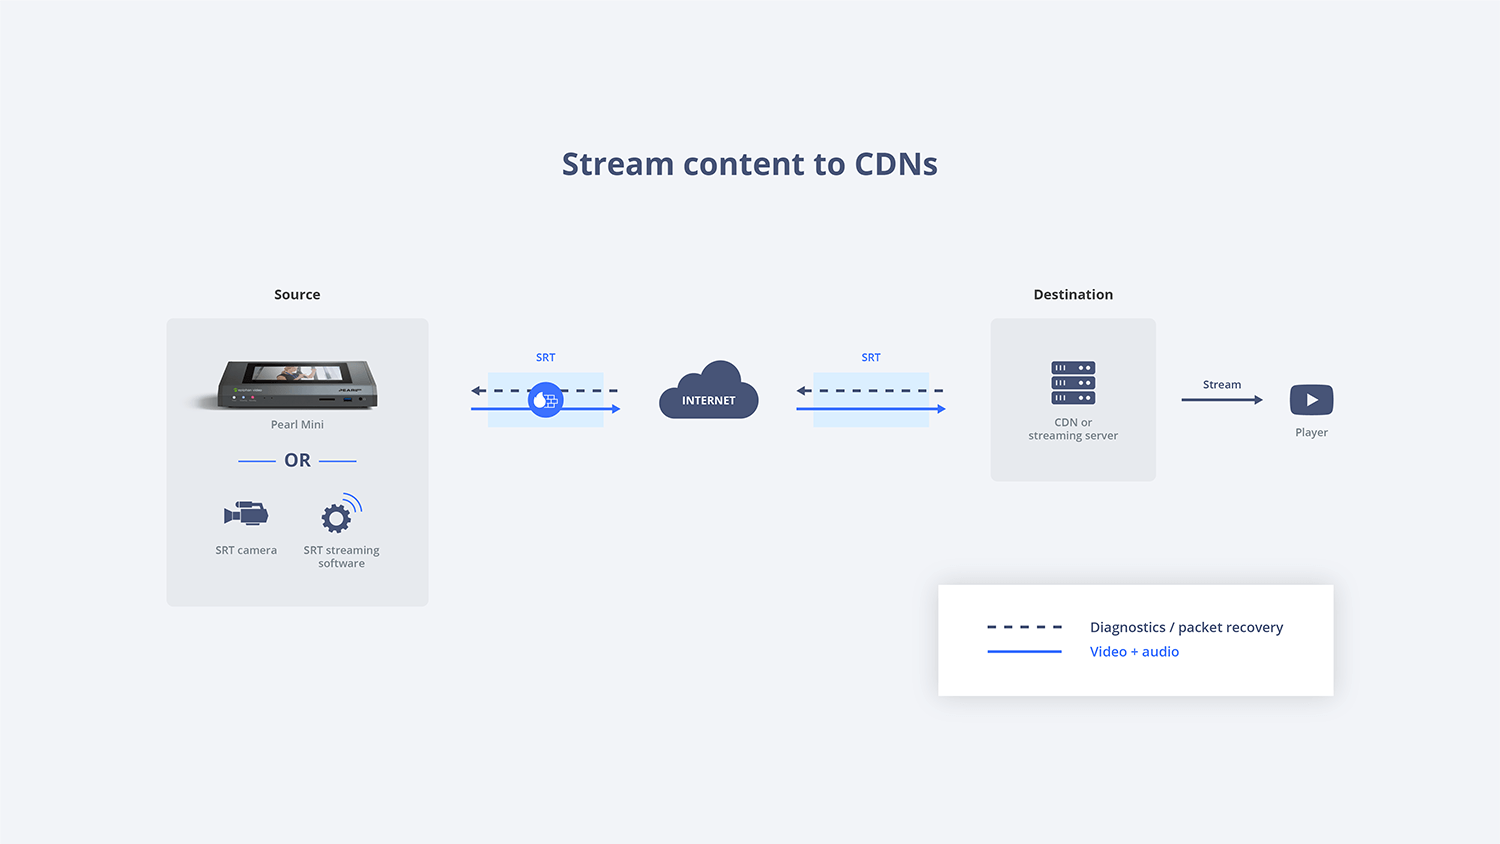 Stream content to CDNs